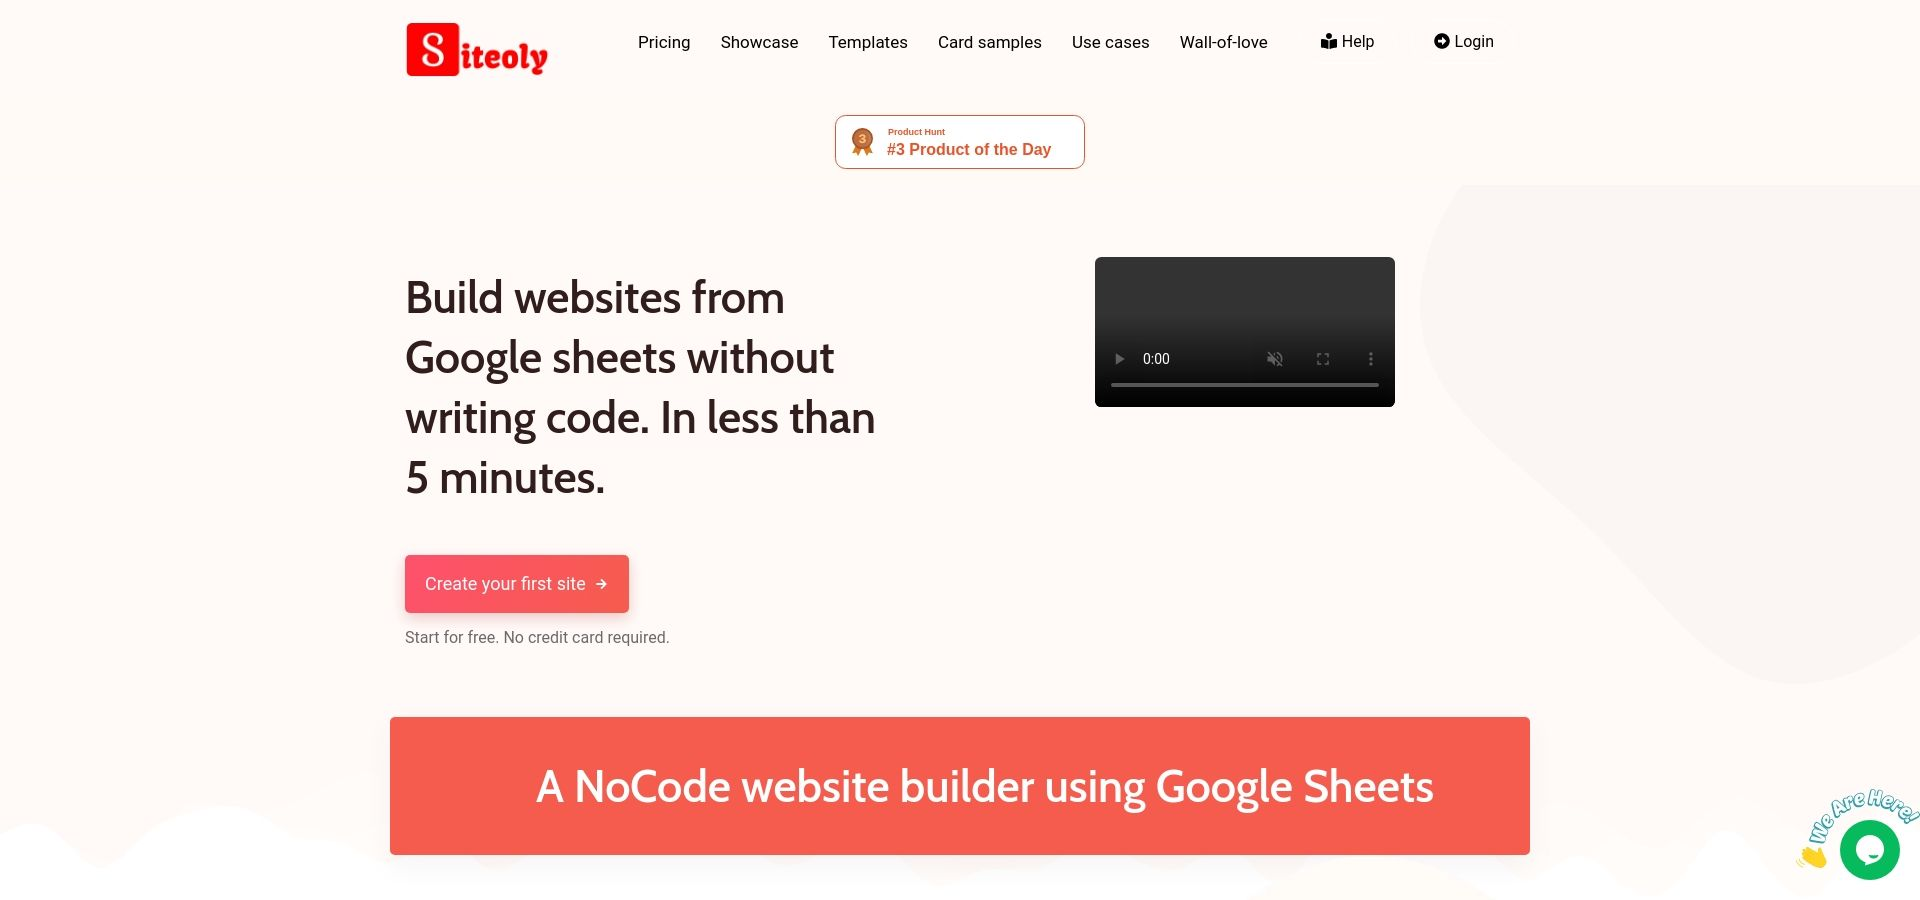 Siteoly - Build websites from Google Sheets